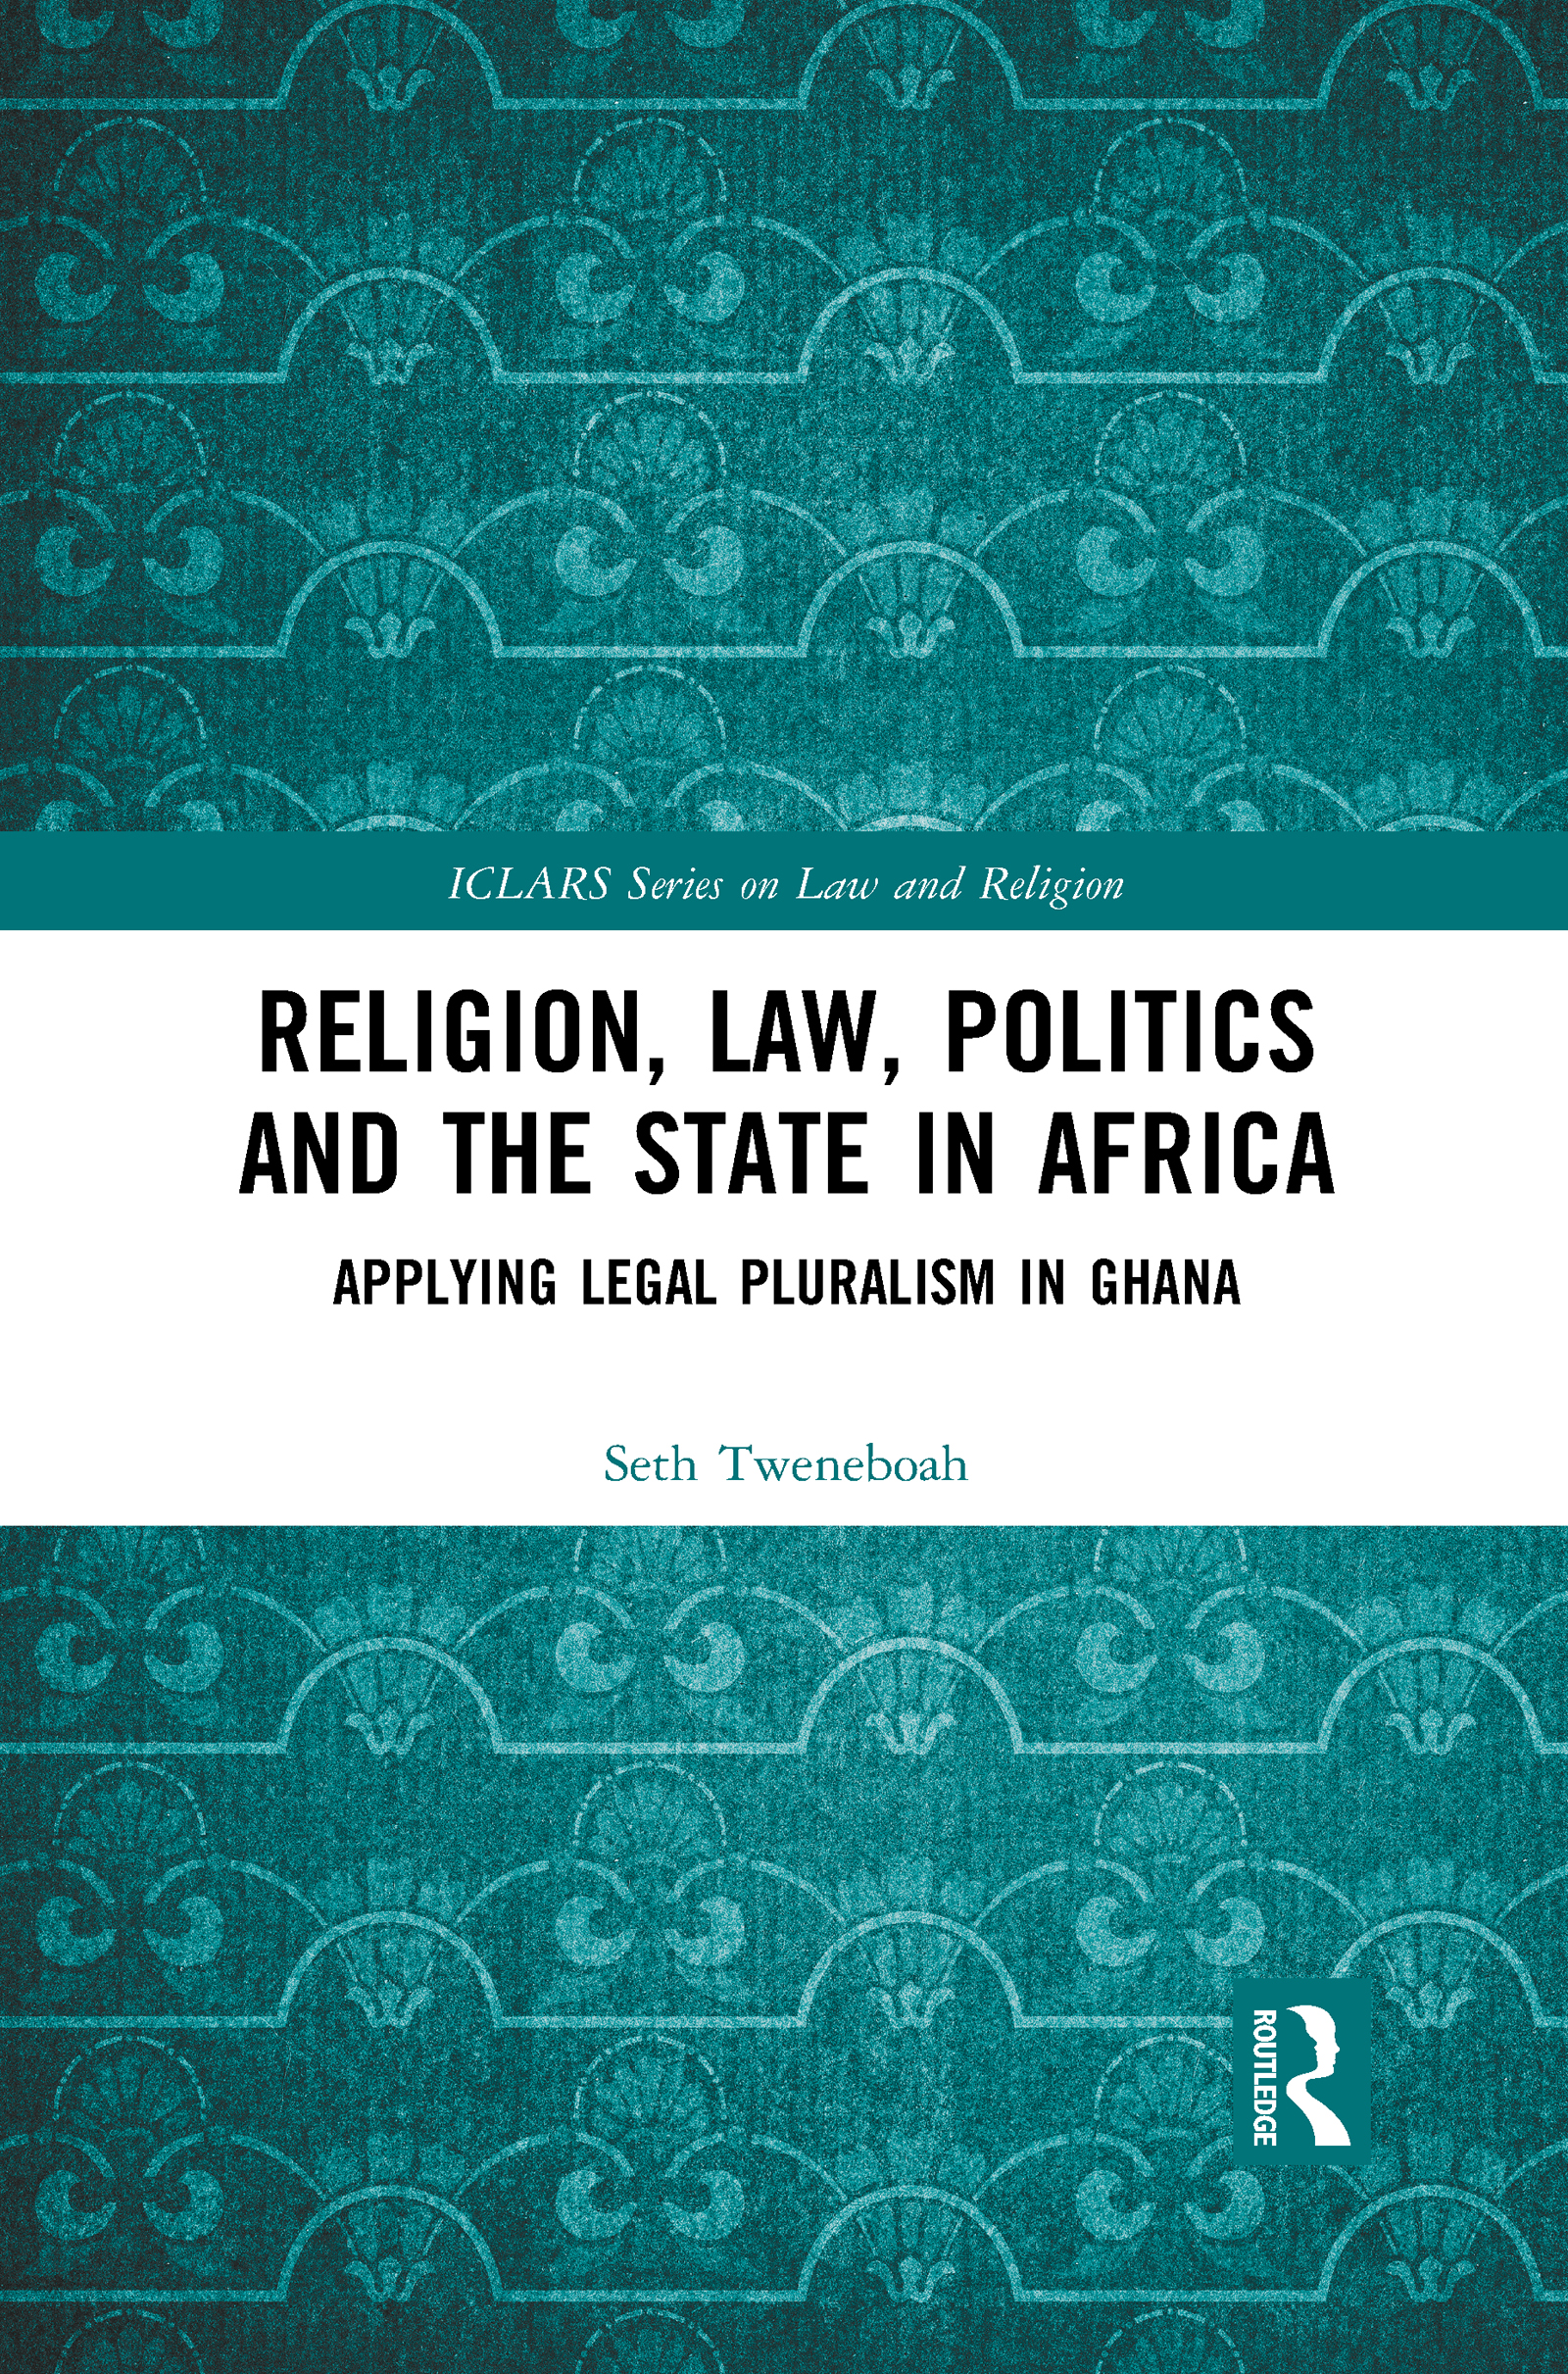 Religion, Law, Politics and the State in Africa